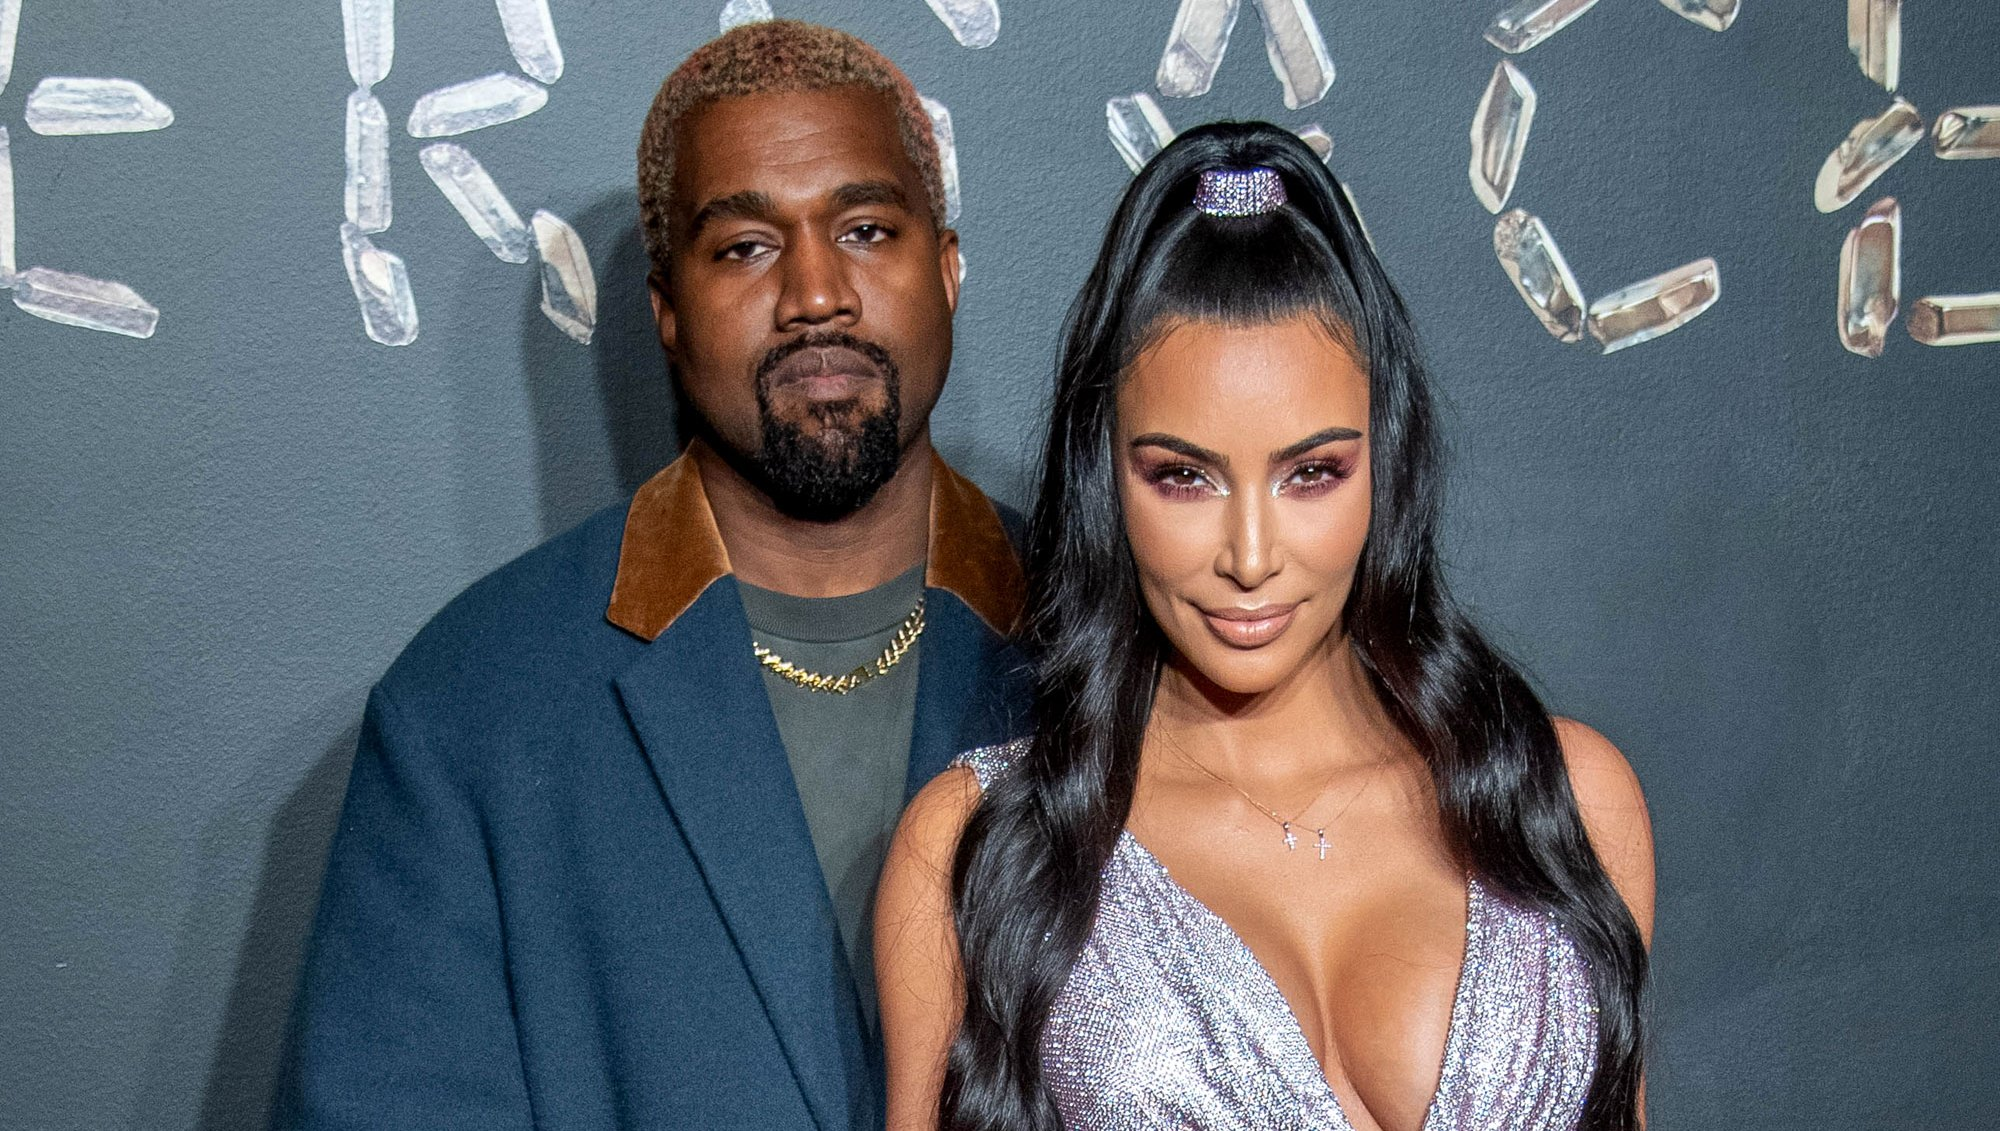 Revisit the 5 Most Kimye Things the Power Couple Have Done Versace fall 2019 fashion show